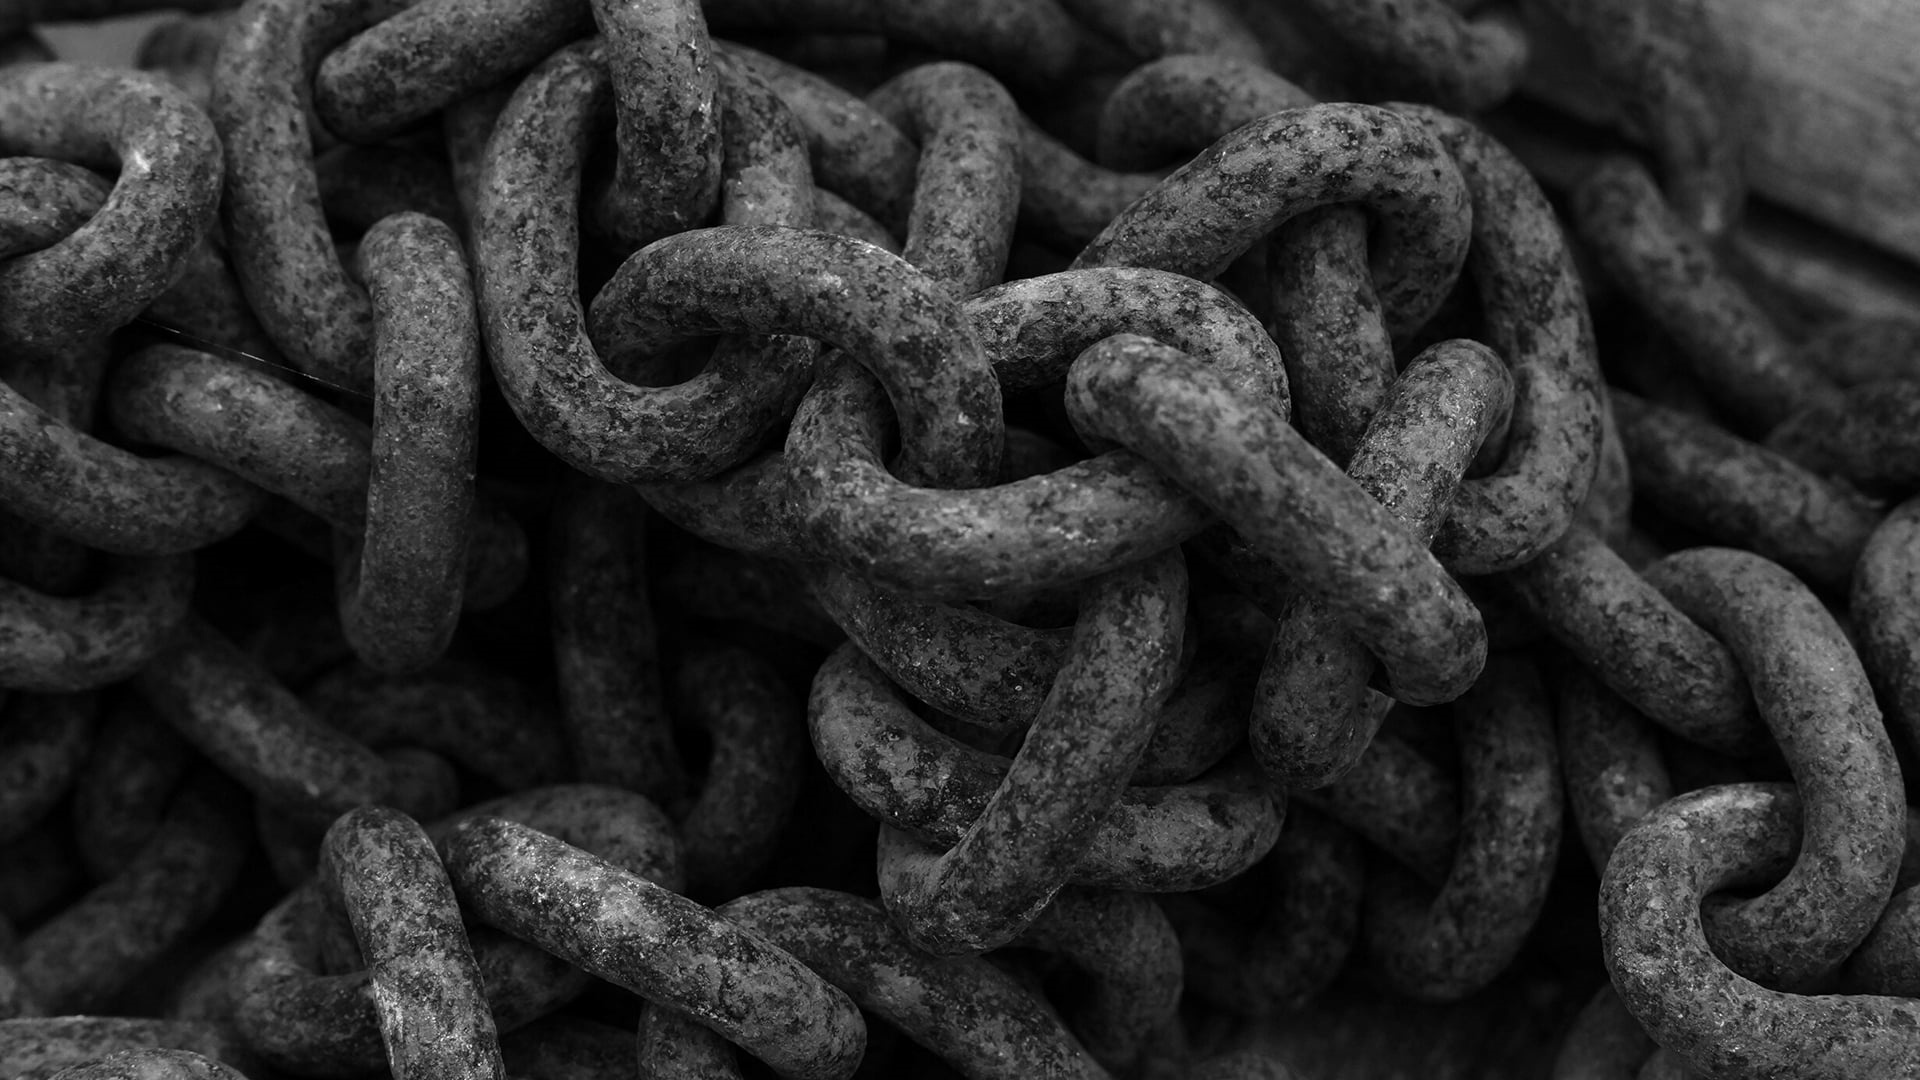 Chain Wallpaper theme